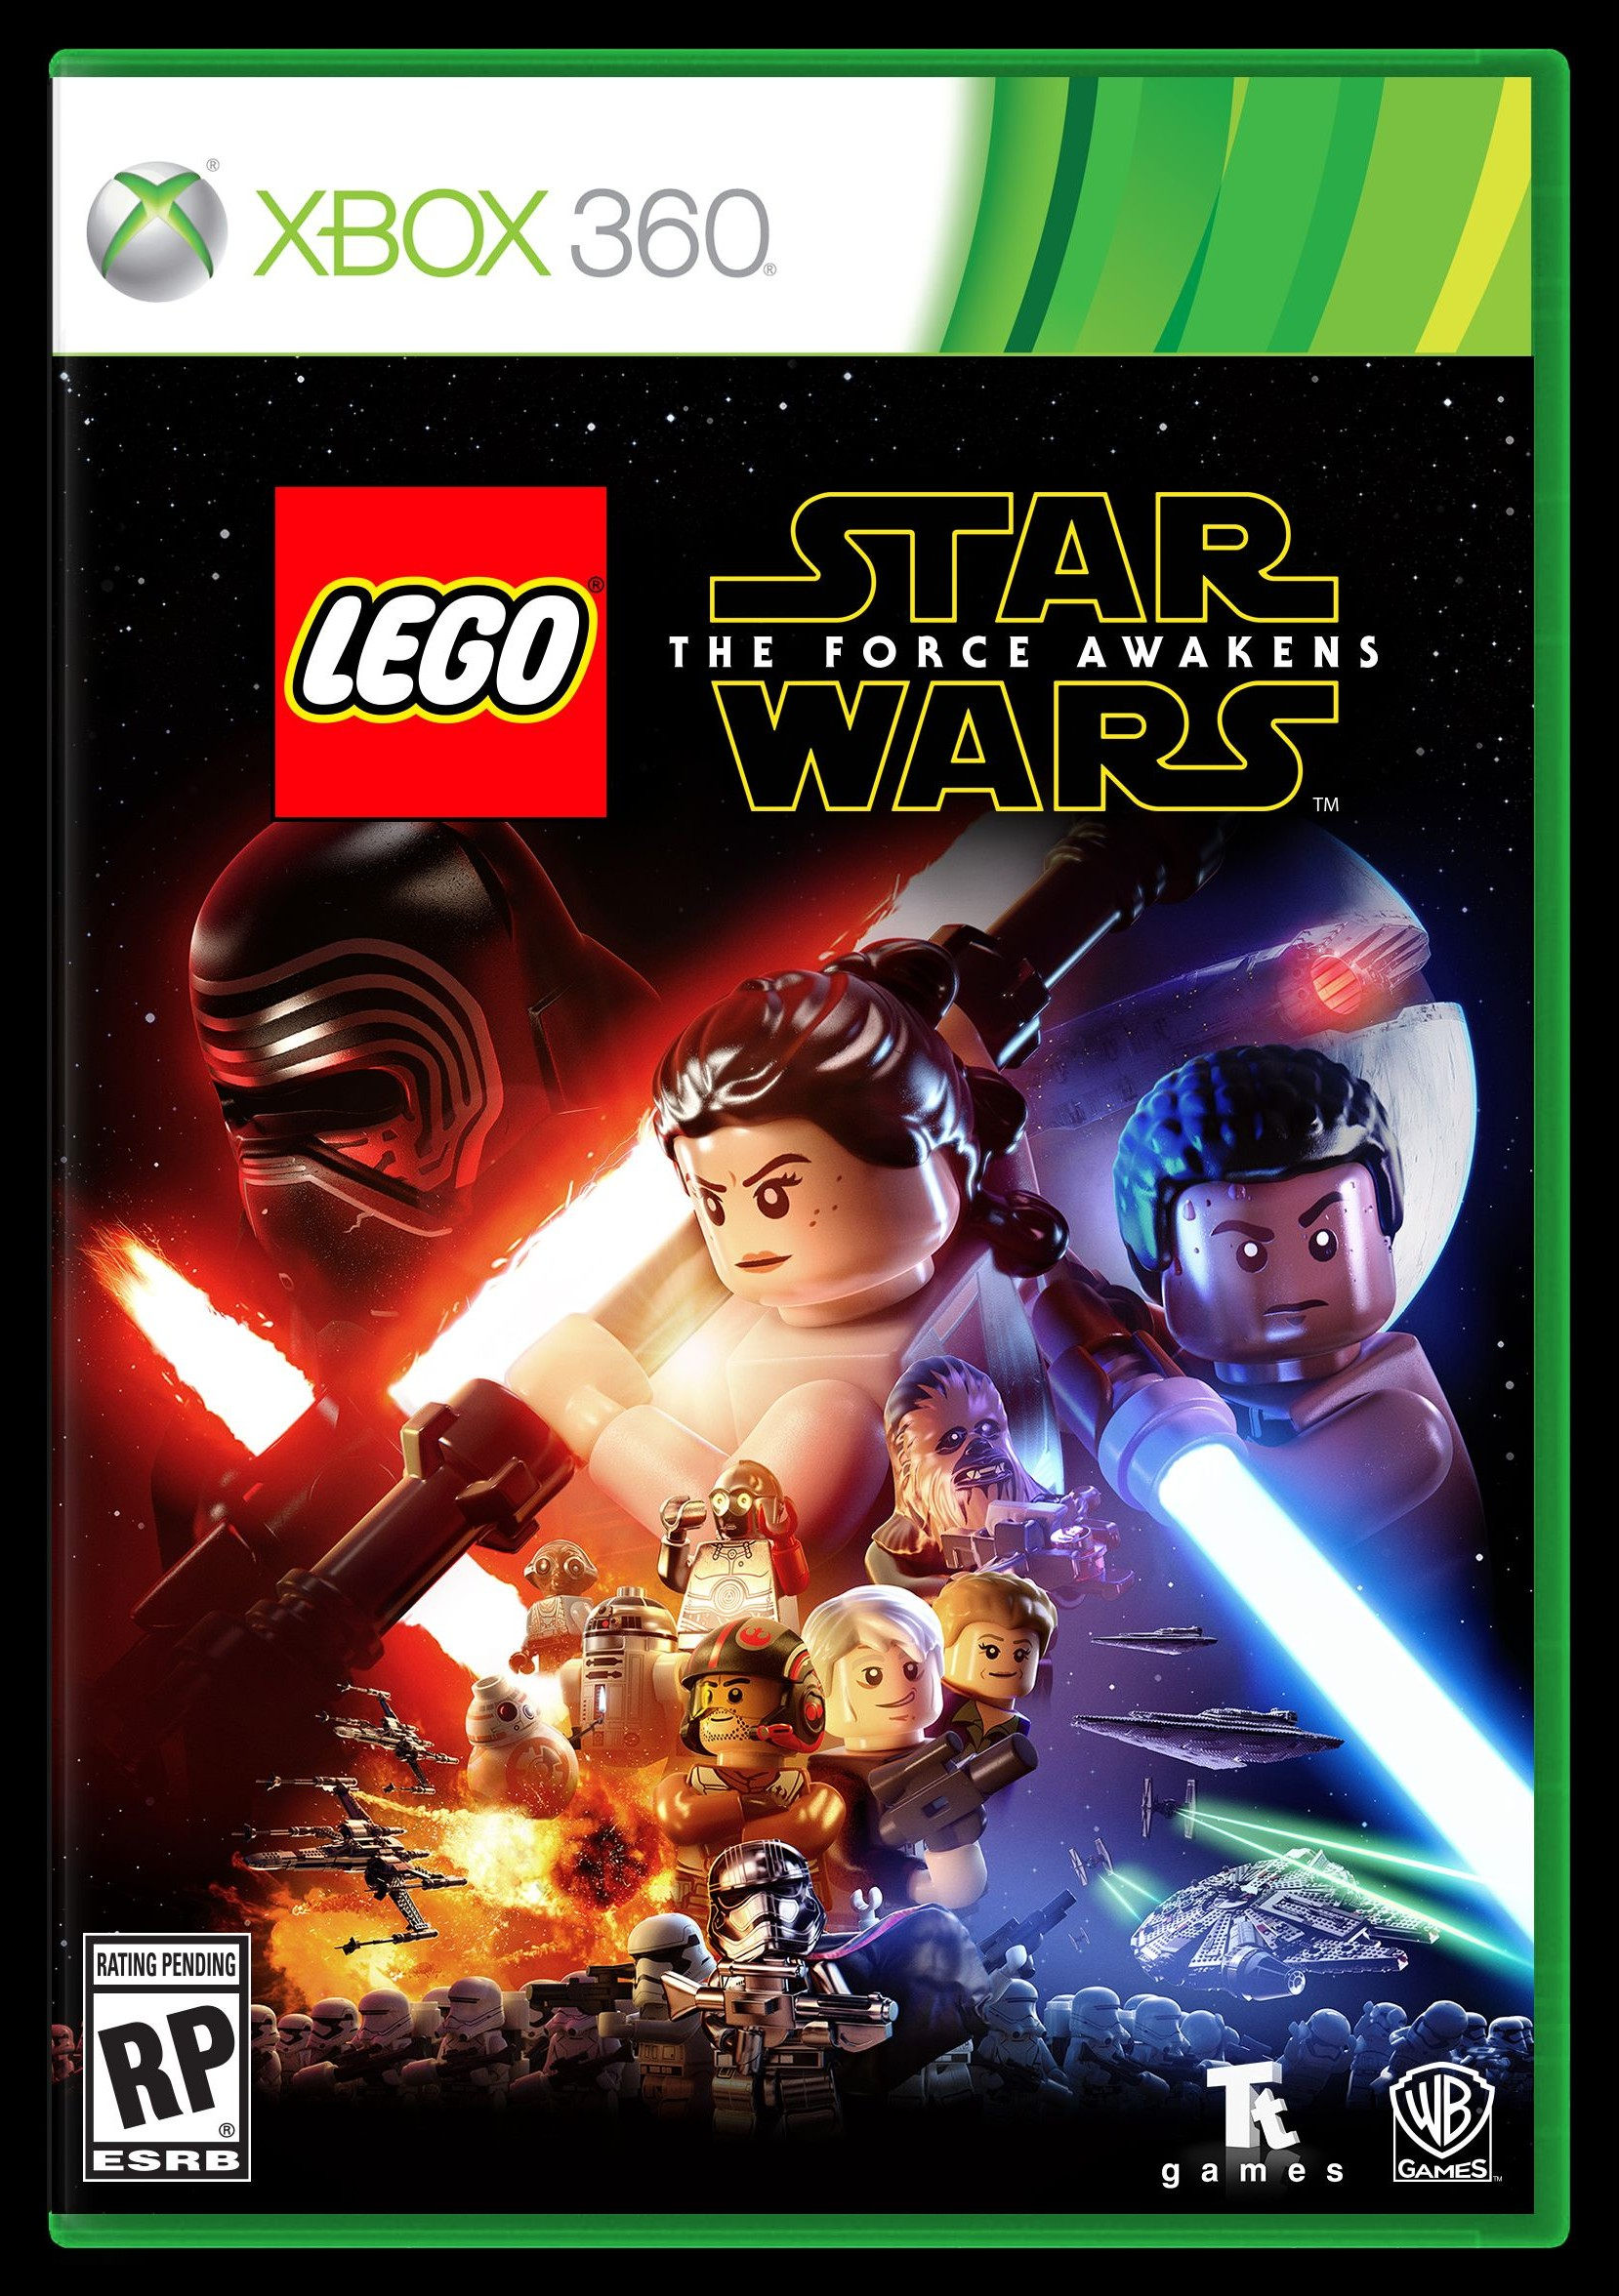 Gear   Video Games/Xbox 360   Brickset: LEGO set guide and